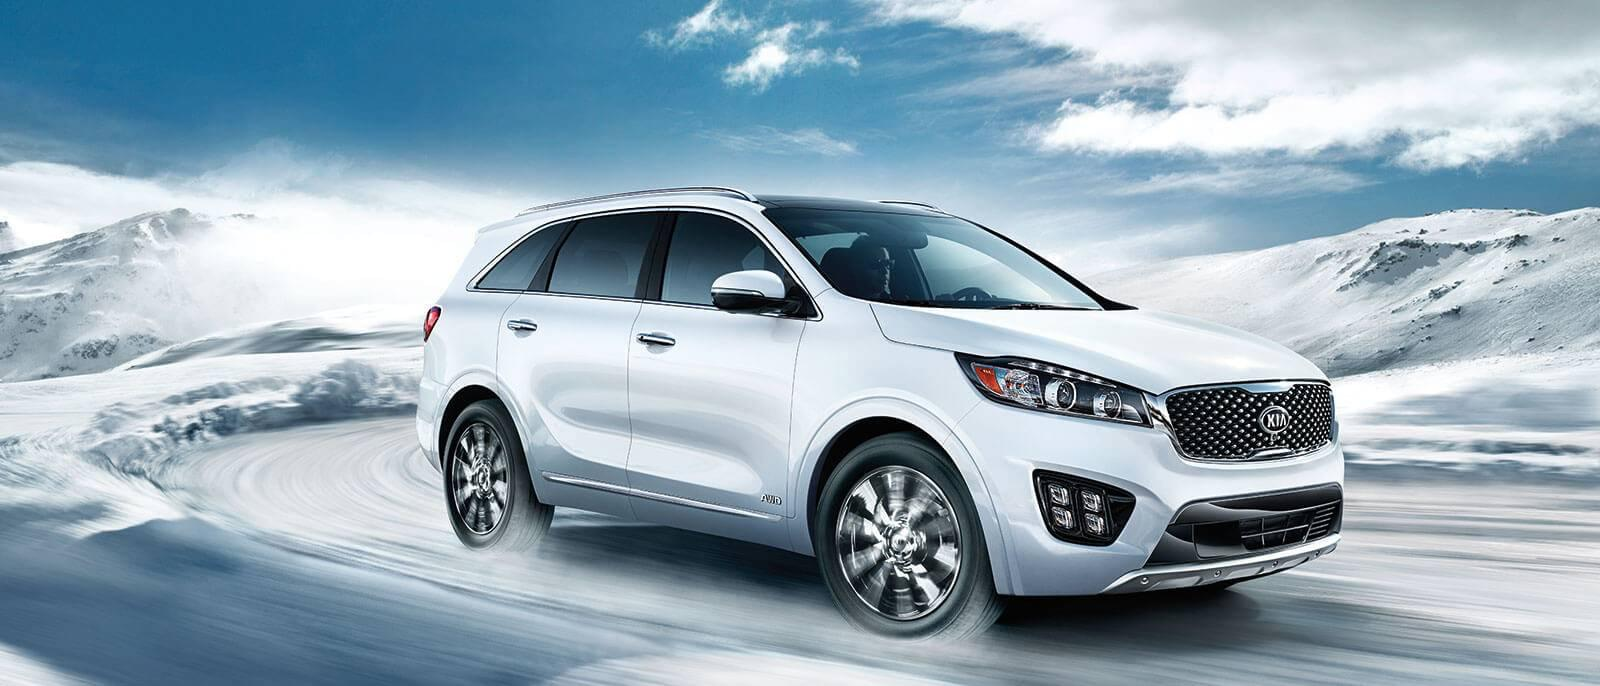 Kia Sorento: Hill-start assist control (HAC)